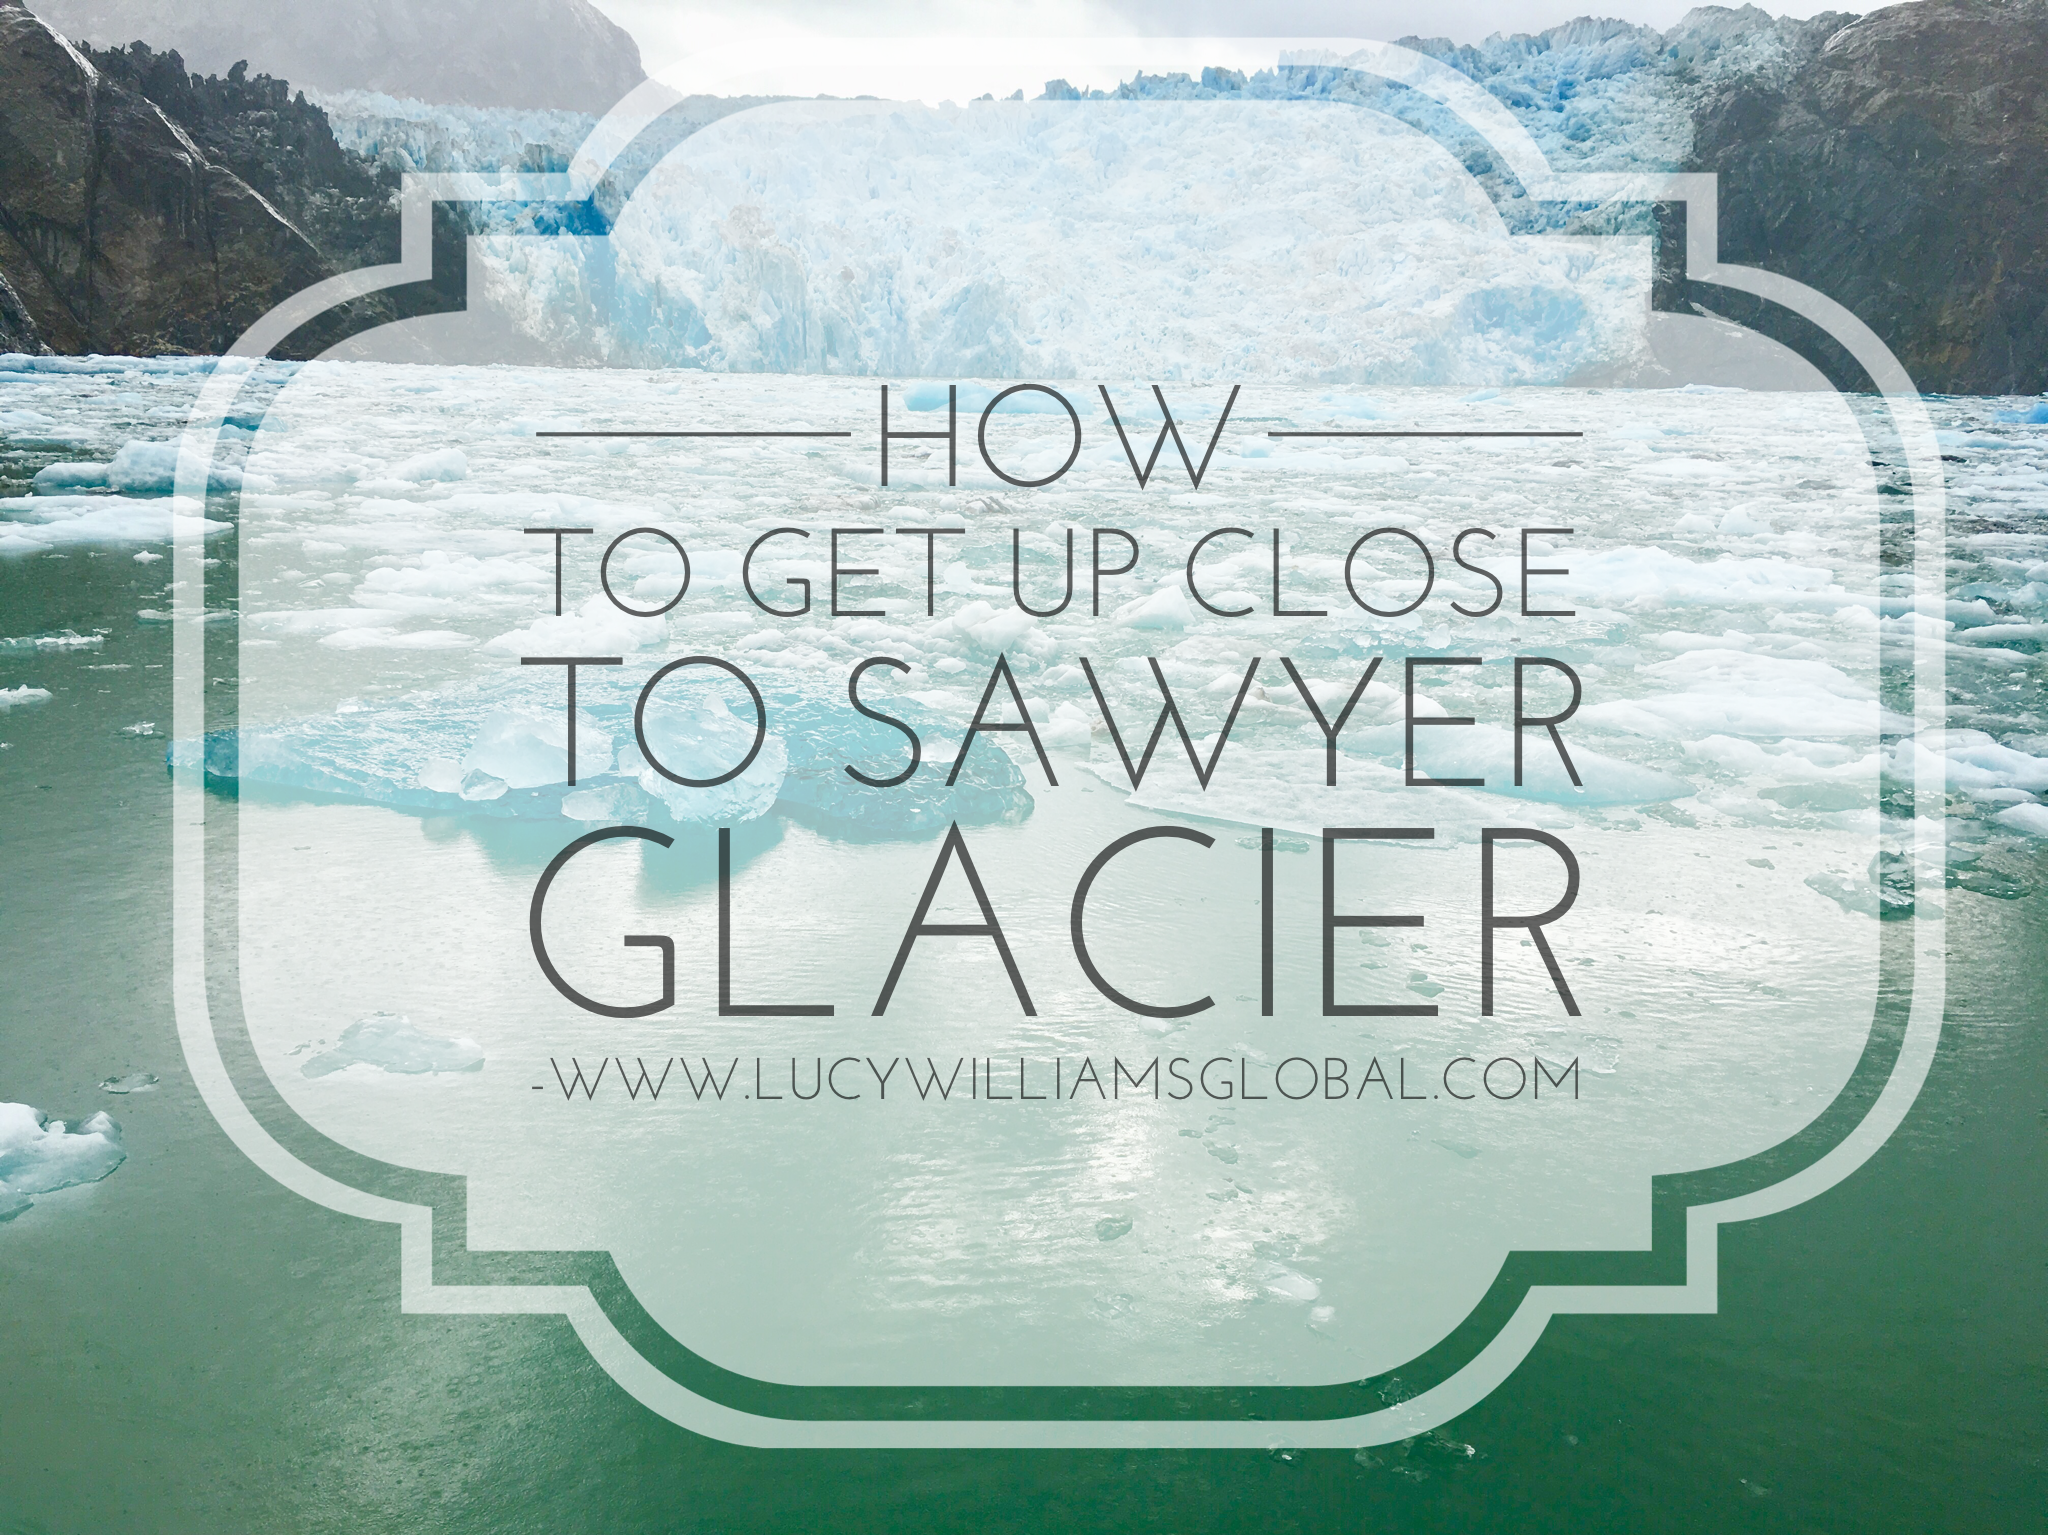 How to get up close to the sawyer glacier in Alaska